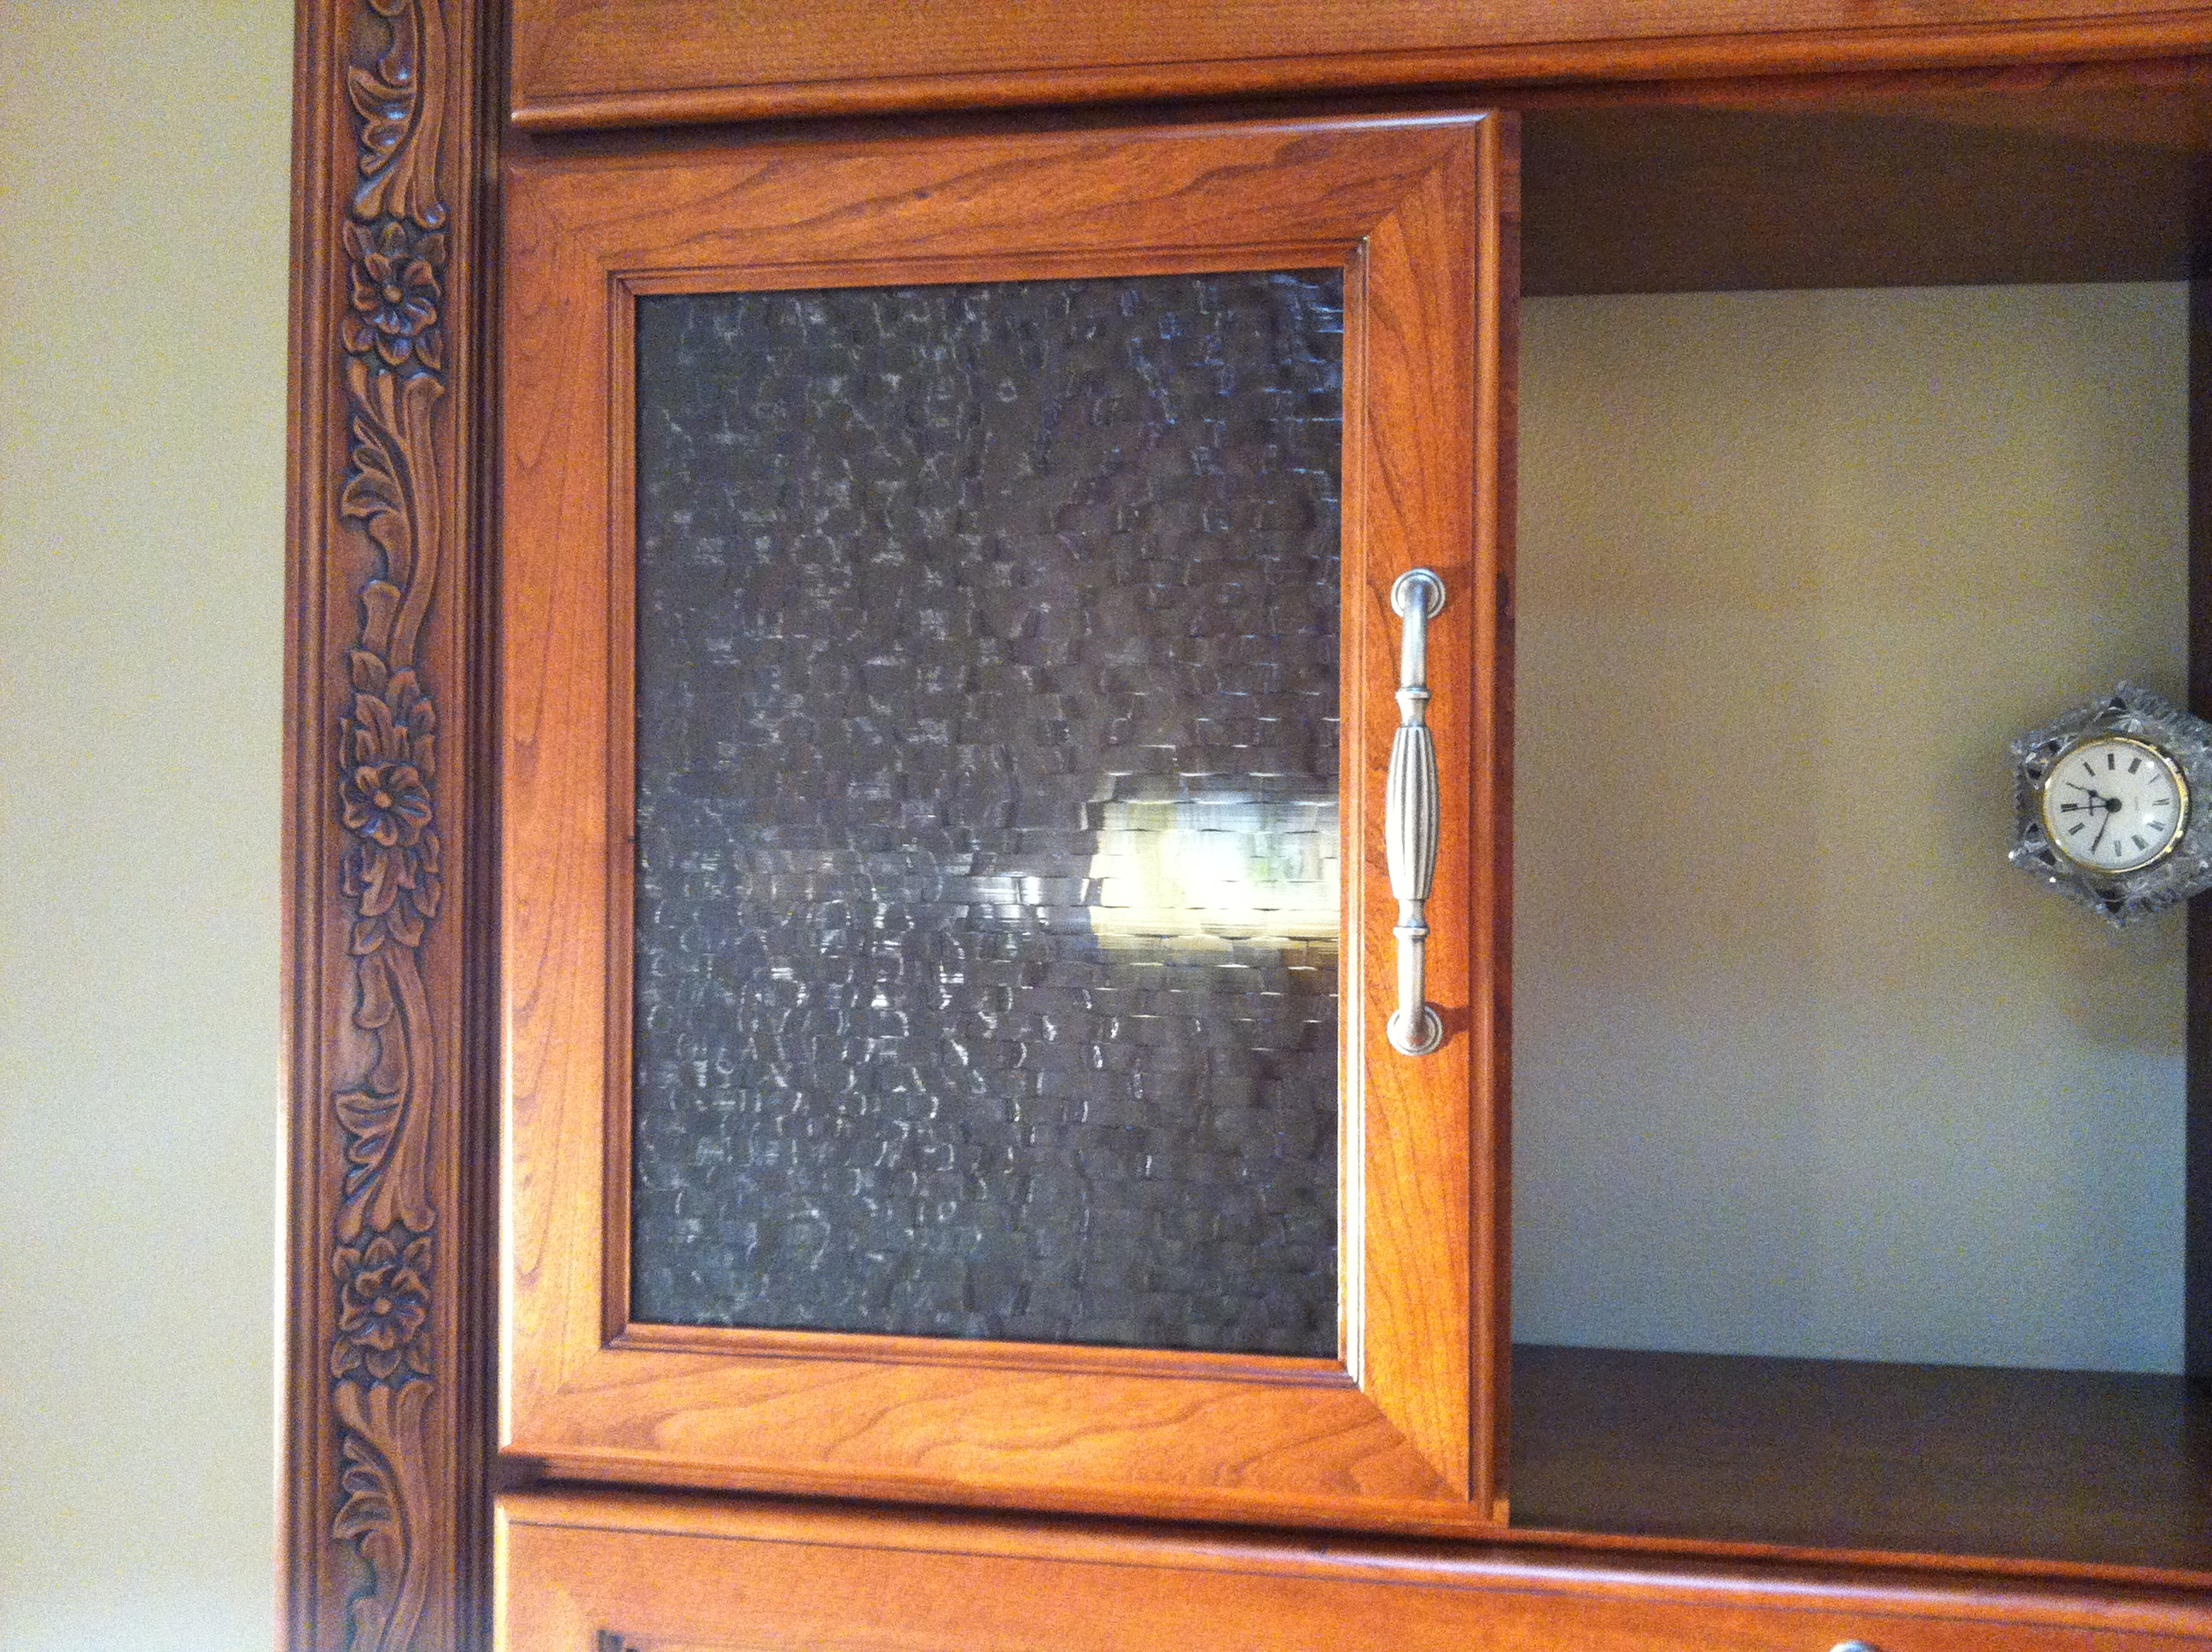 The Benefits And Challenges Of Glass Front Cabinets U2013 Part I